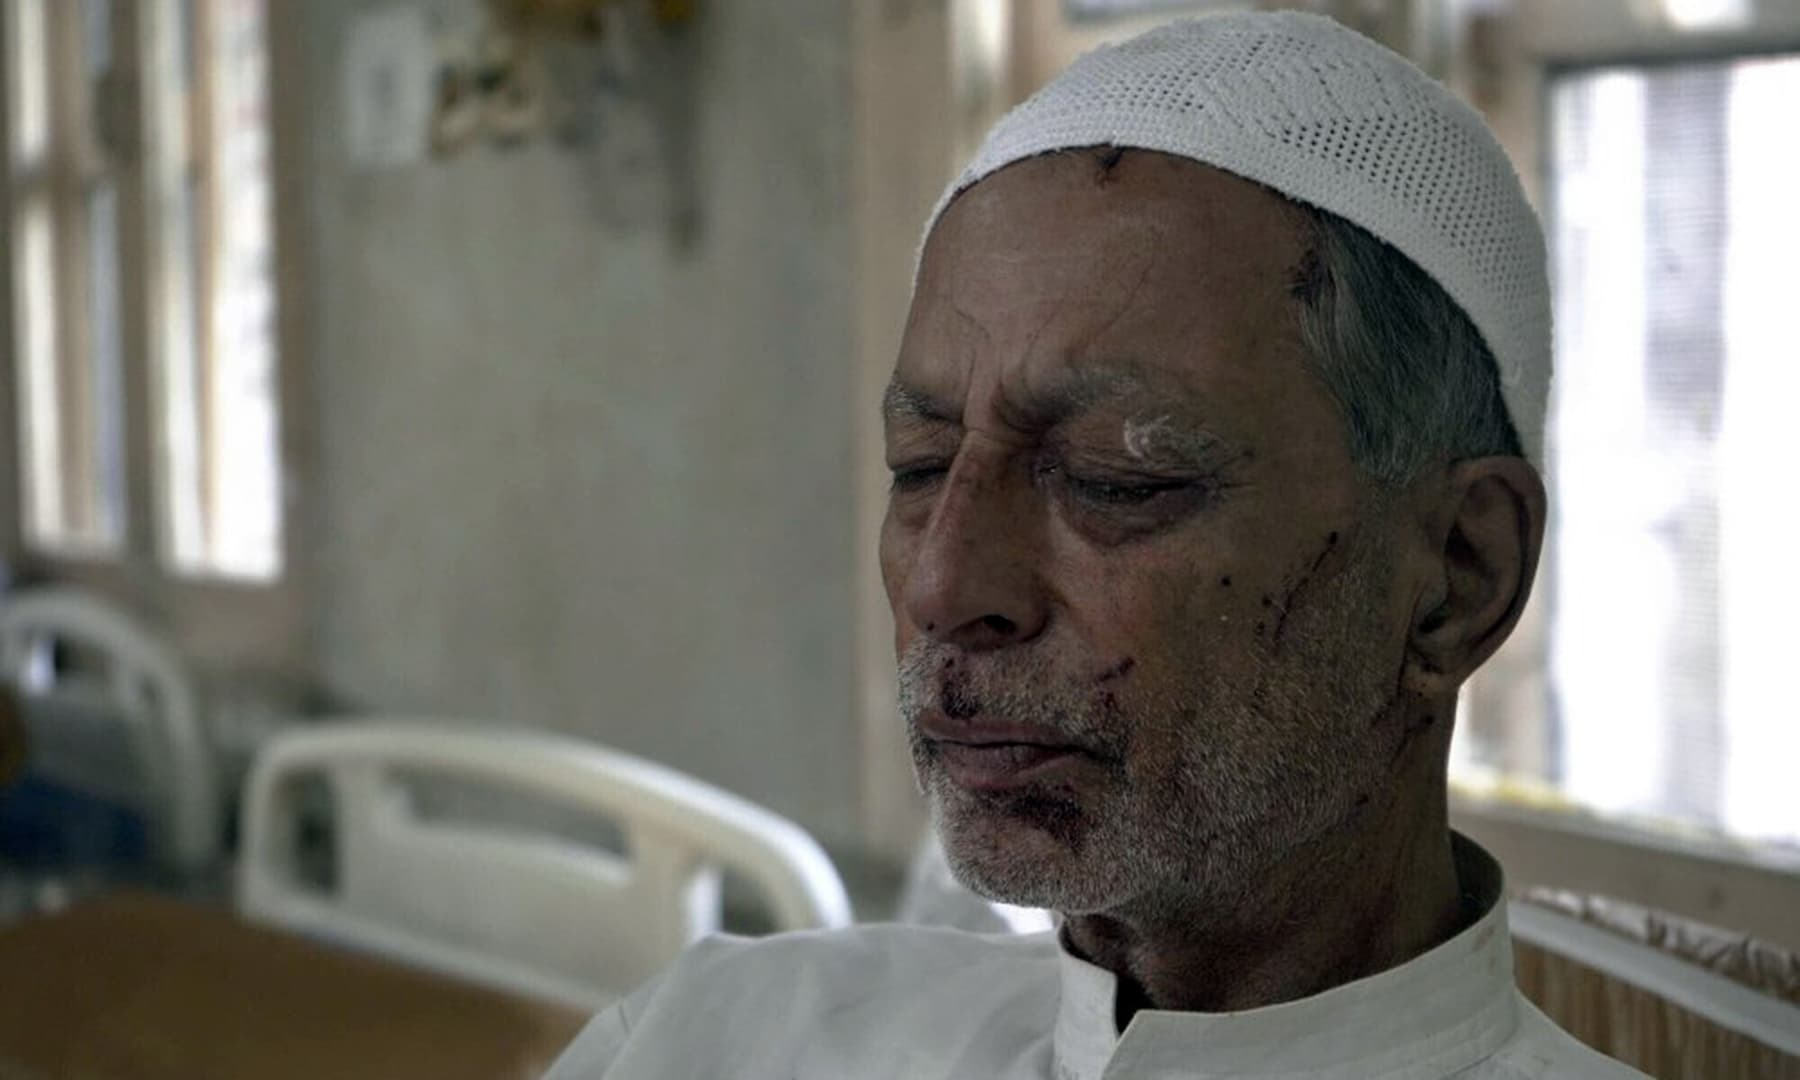 Mohammad Siddiq, 70, said he was wounded when an Indian police man fired a pellet gun at him while returning home from a mosque, badly damaging his left eye. — AP/File